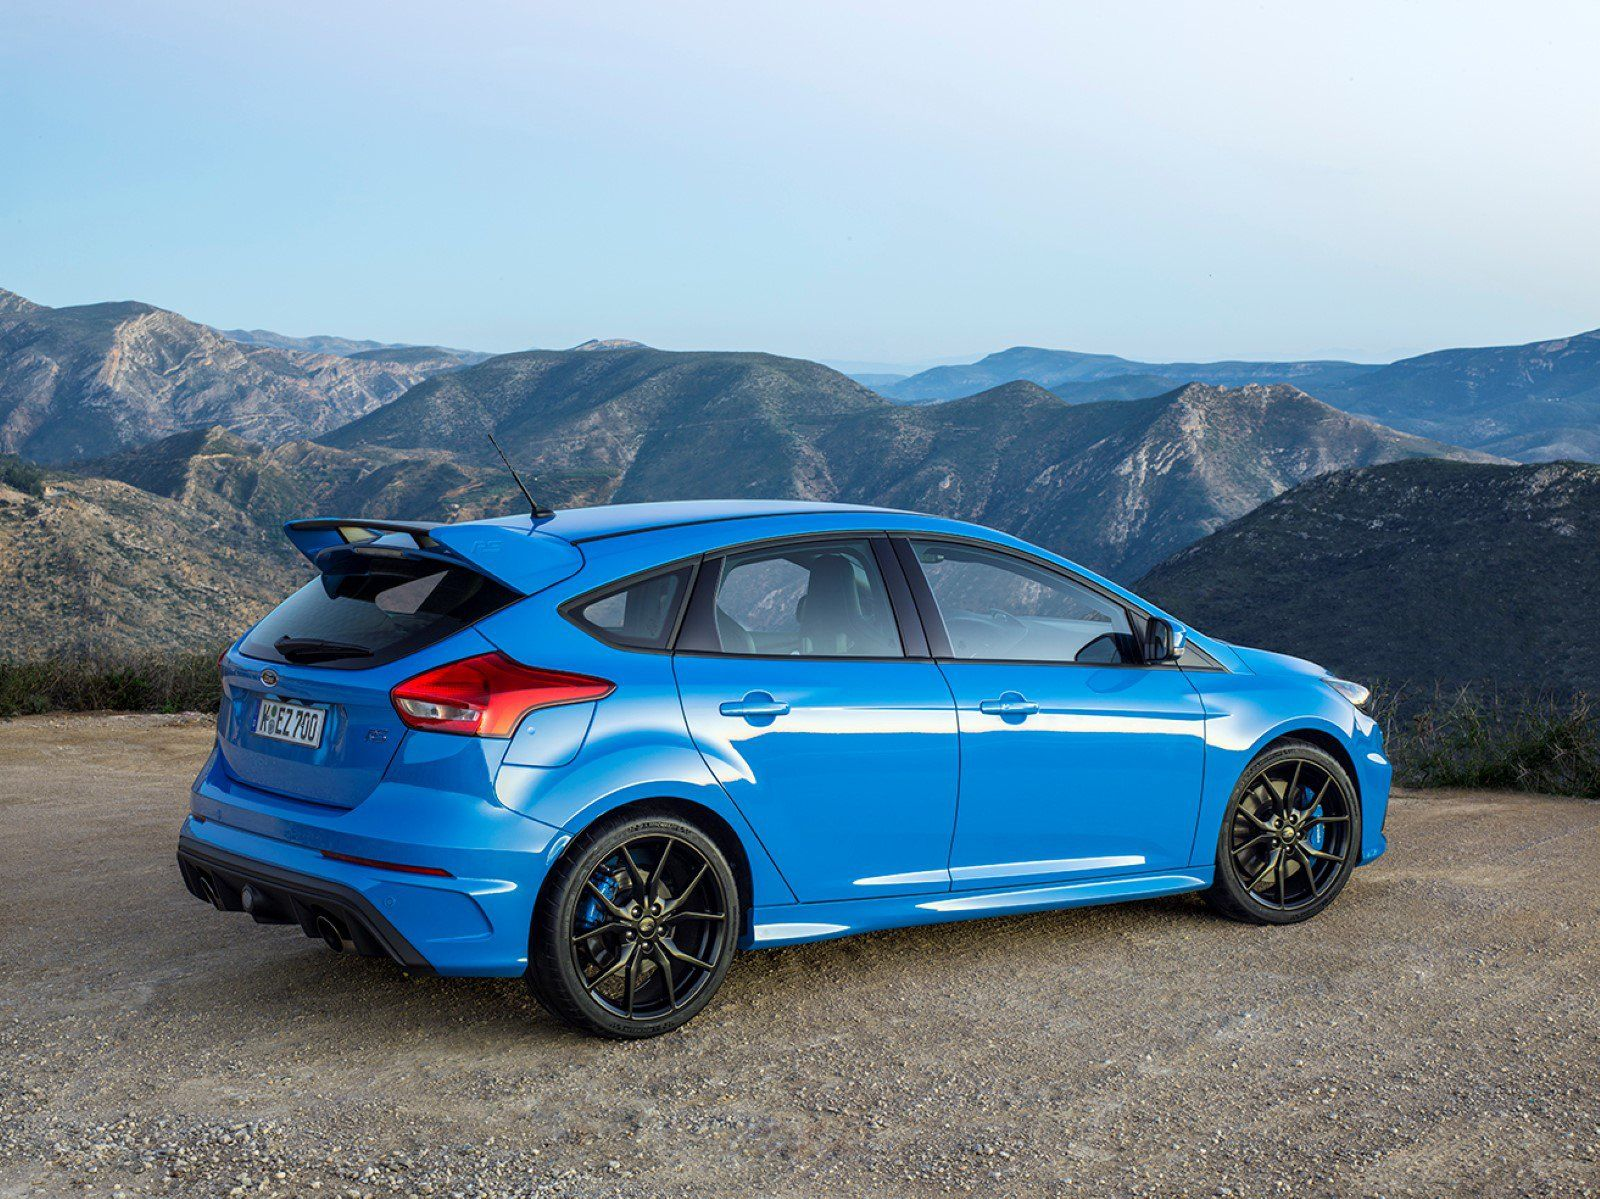 2016 Ford Focus Rs Review Ford Focus Ford Focus Rs Focus Rs